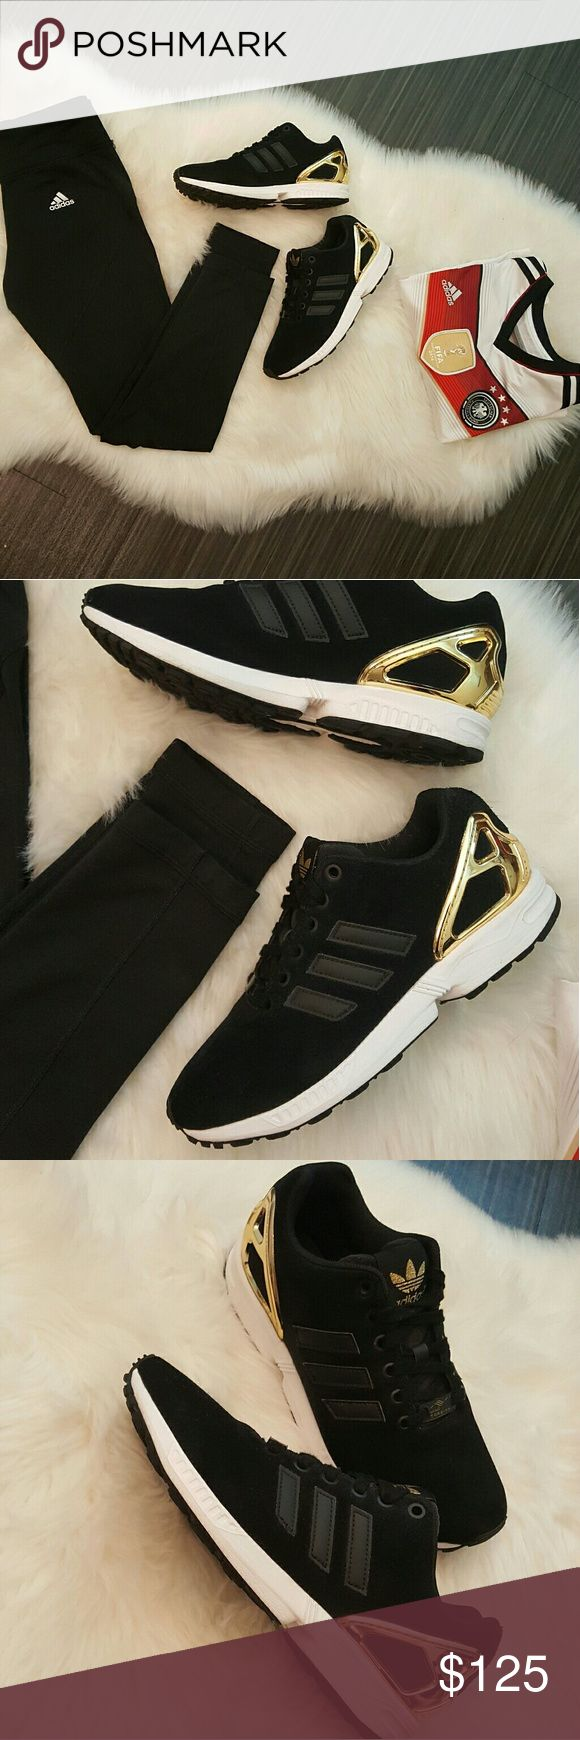 ❤MAKE OFFER❤Adidas ZX FLUX Golden Heel Womens size 7.5   Black suede and gold!   Brand new condition!   Accepting only reasonable offers! adidas Shoes Sneakers